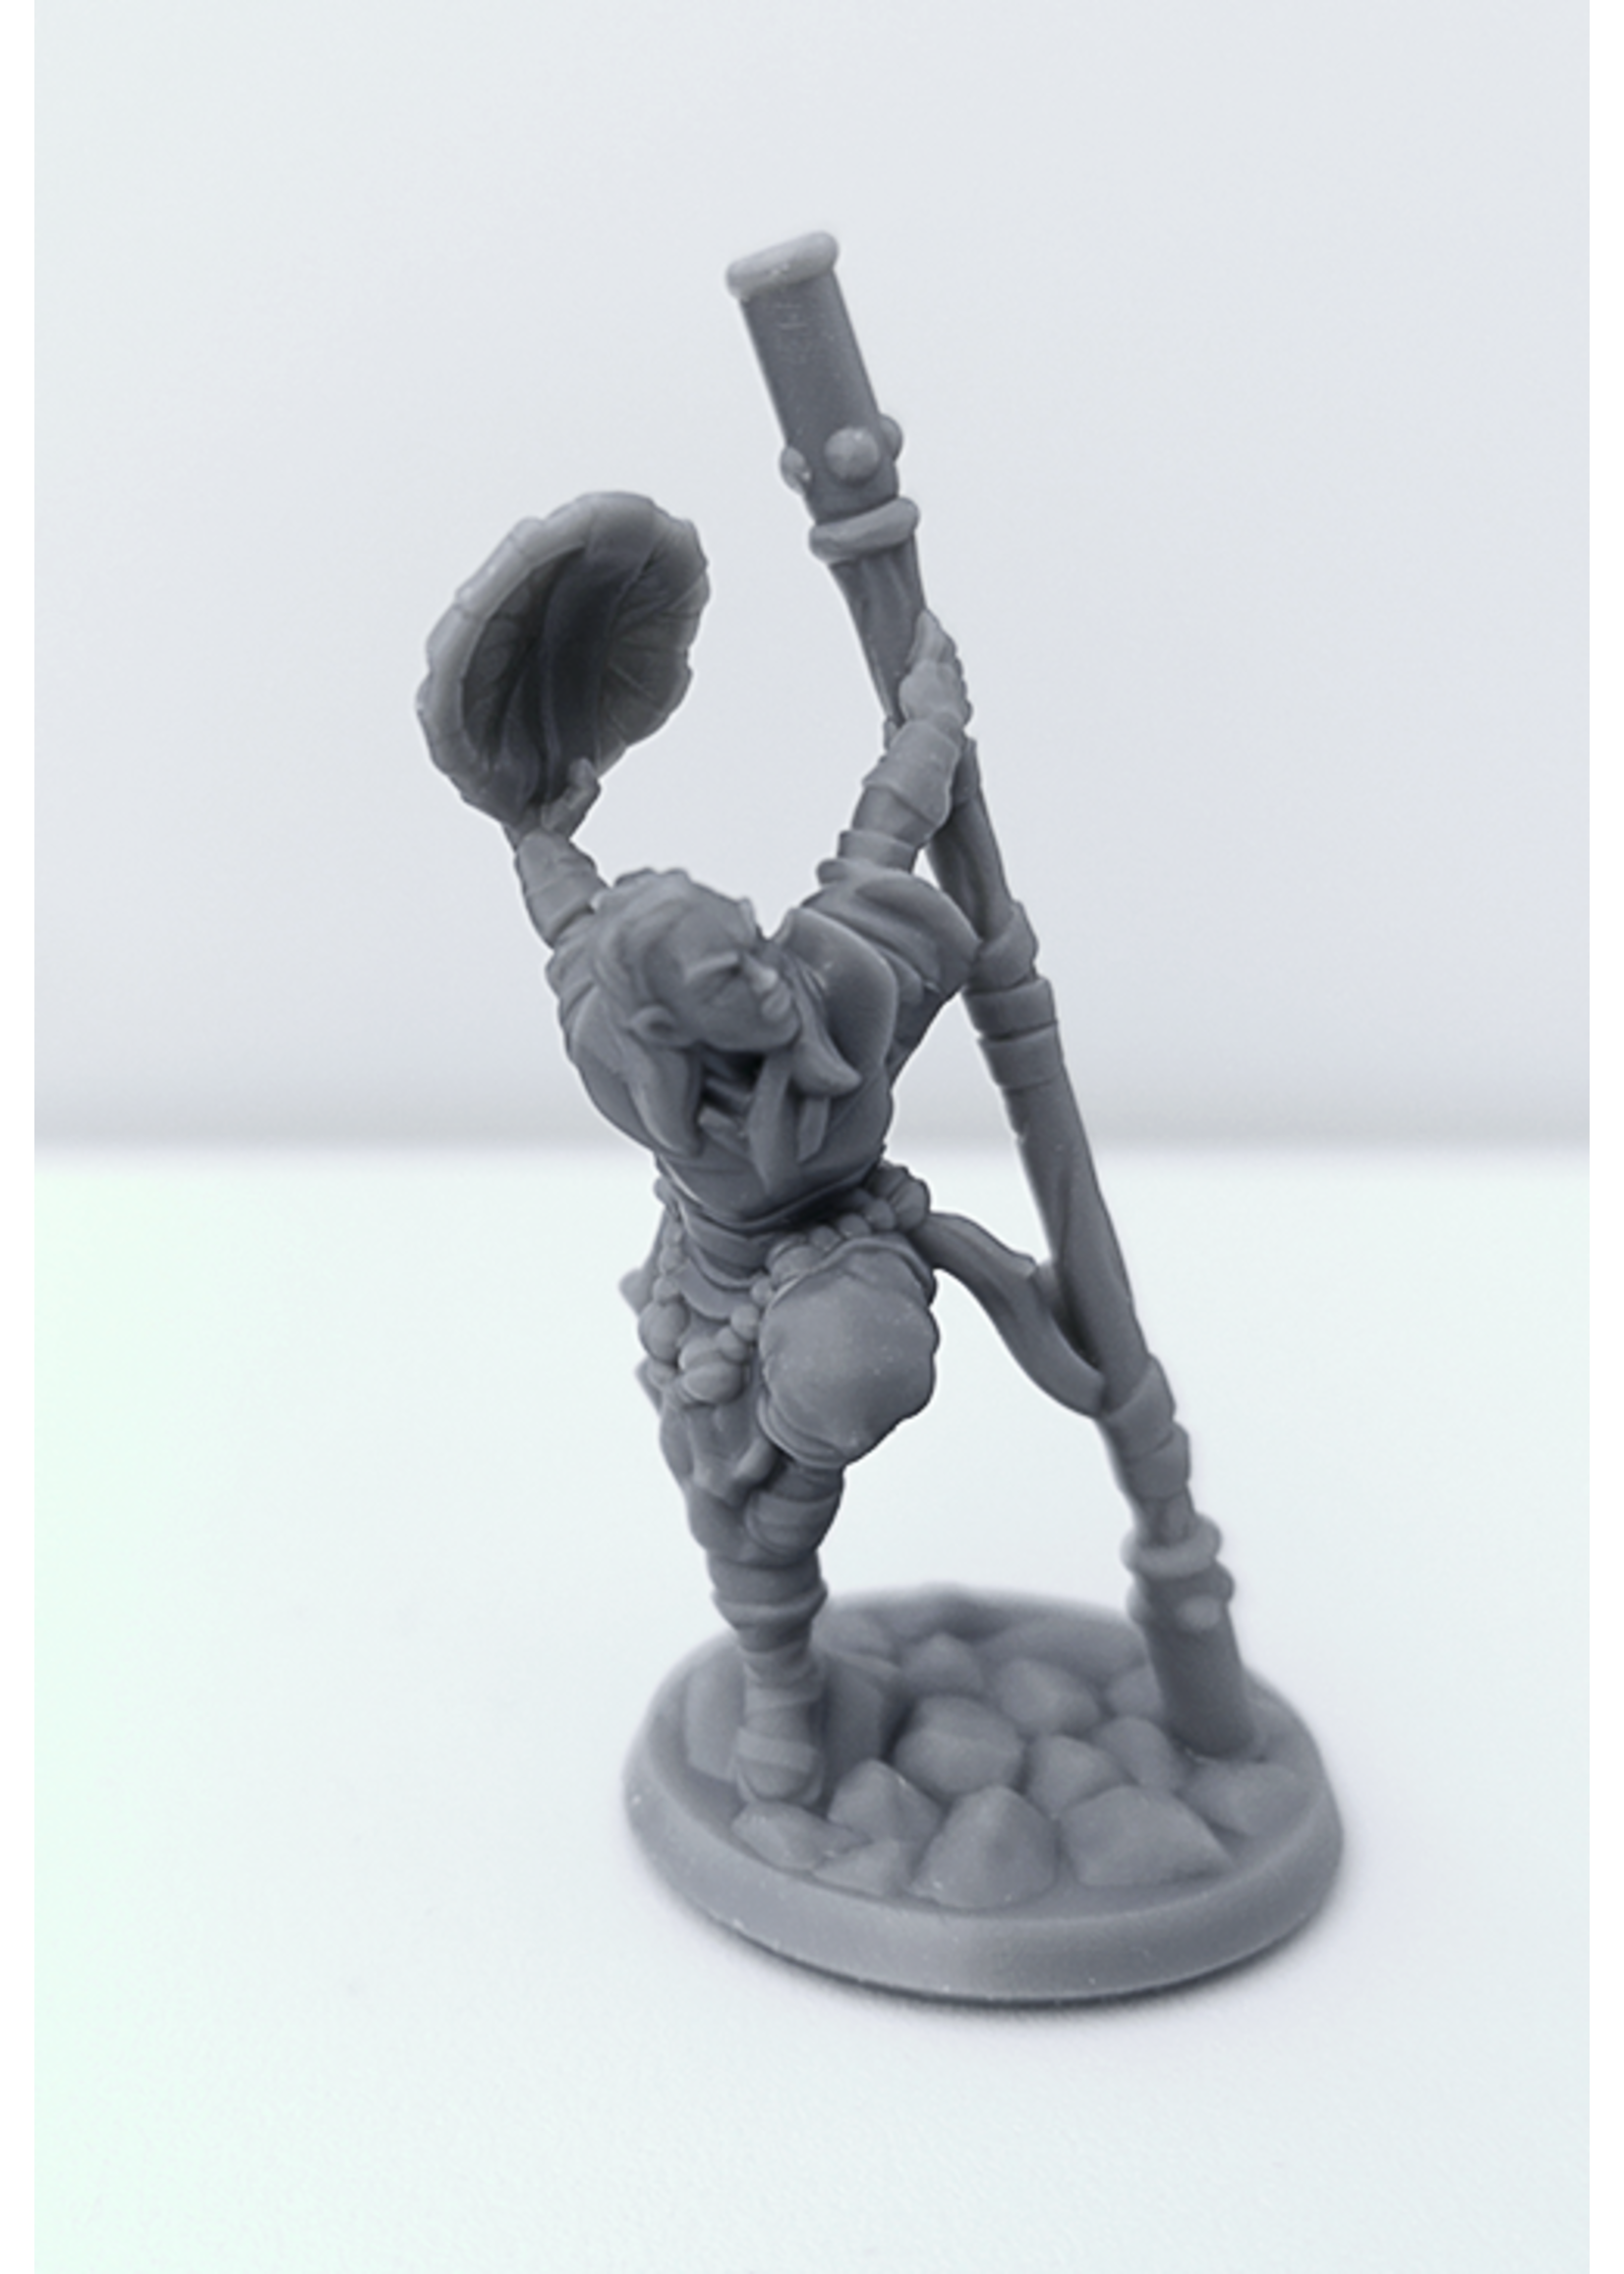 3D Printed Miniature - Monk Female 01 - Dungeons & Dragons - Hero of the Realm KS